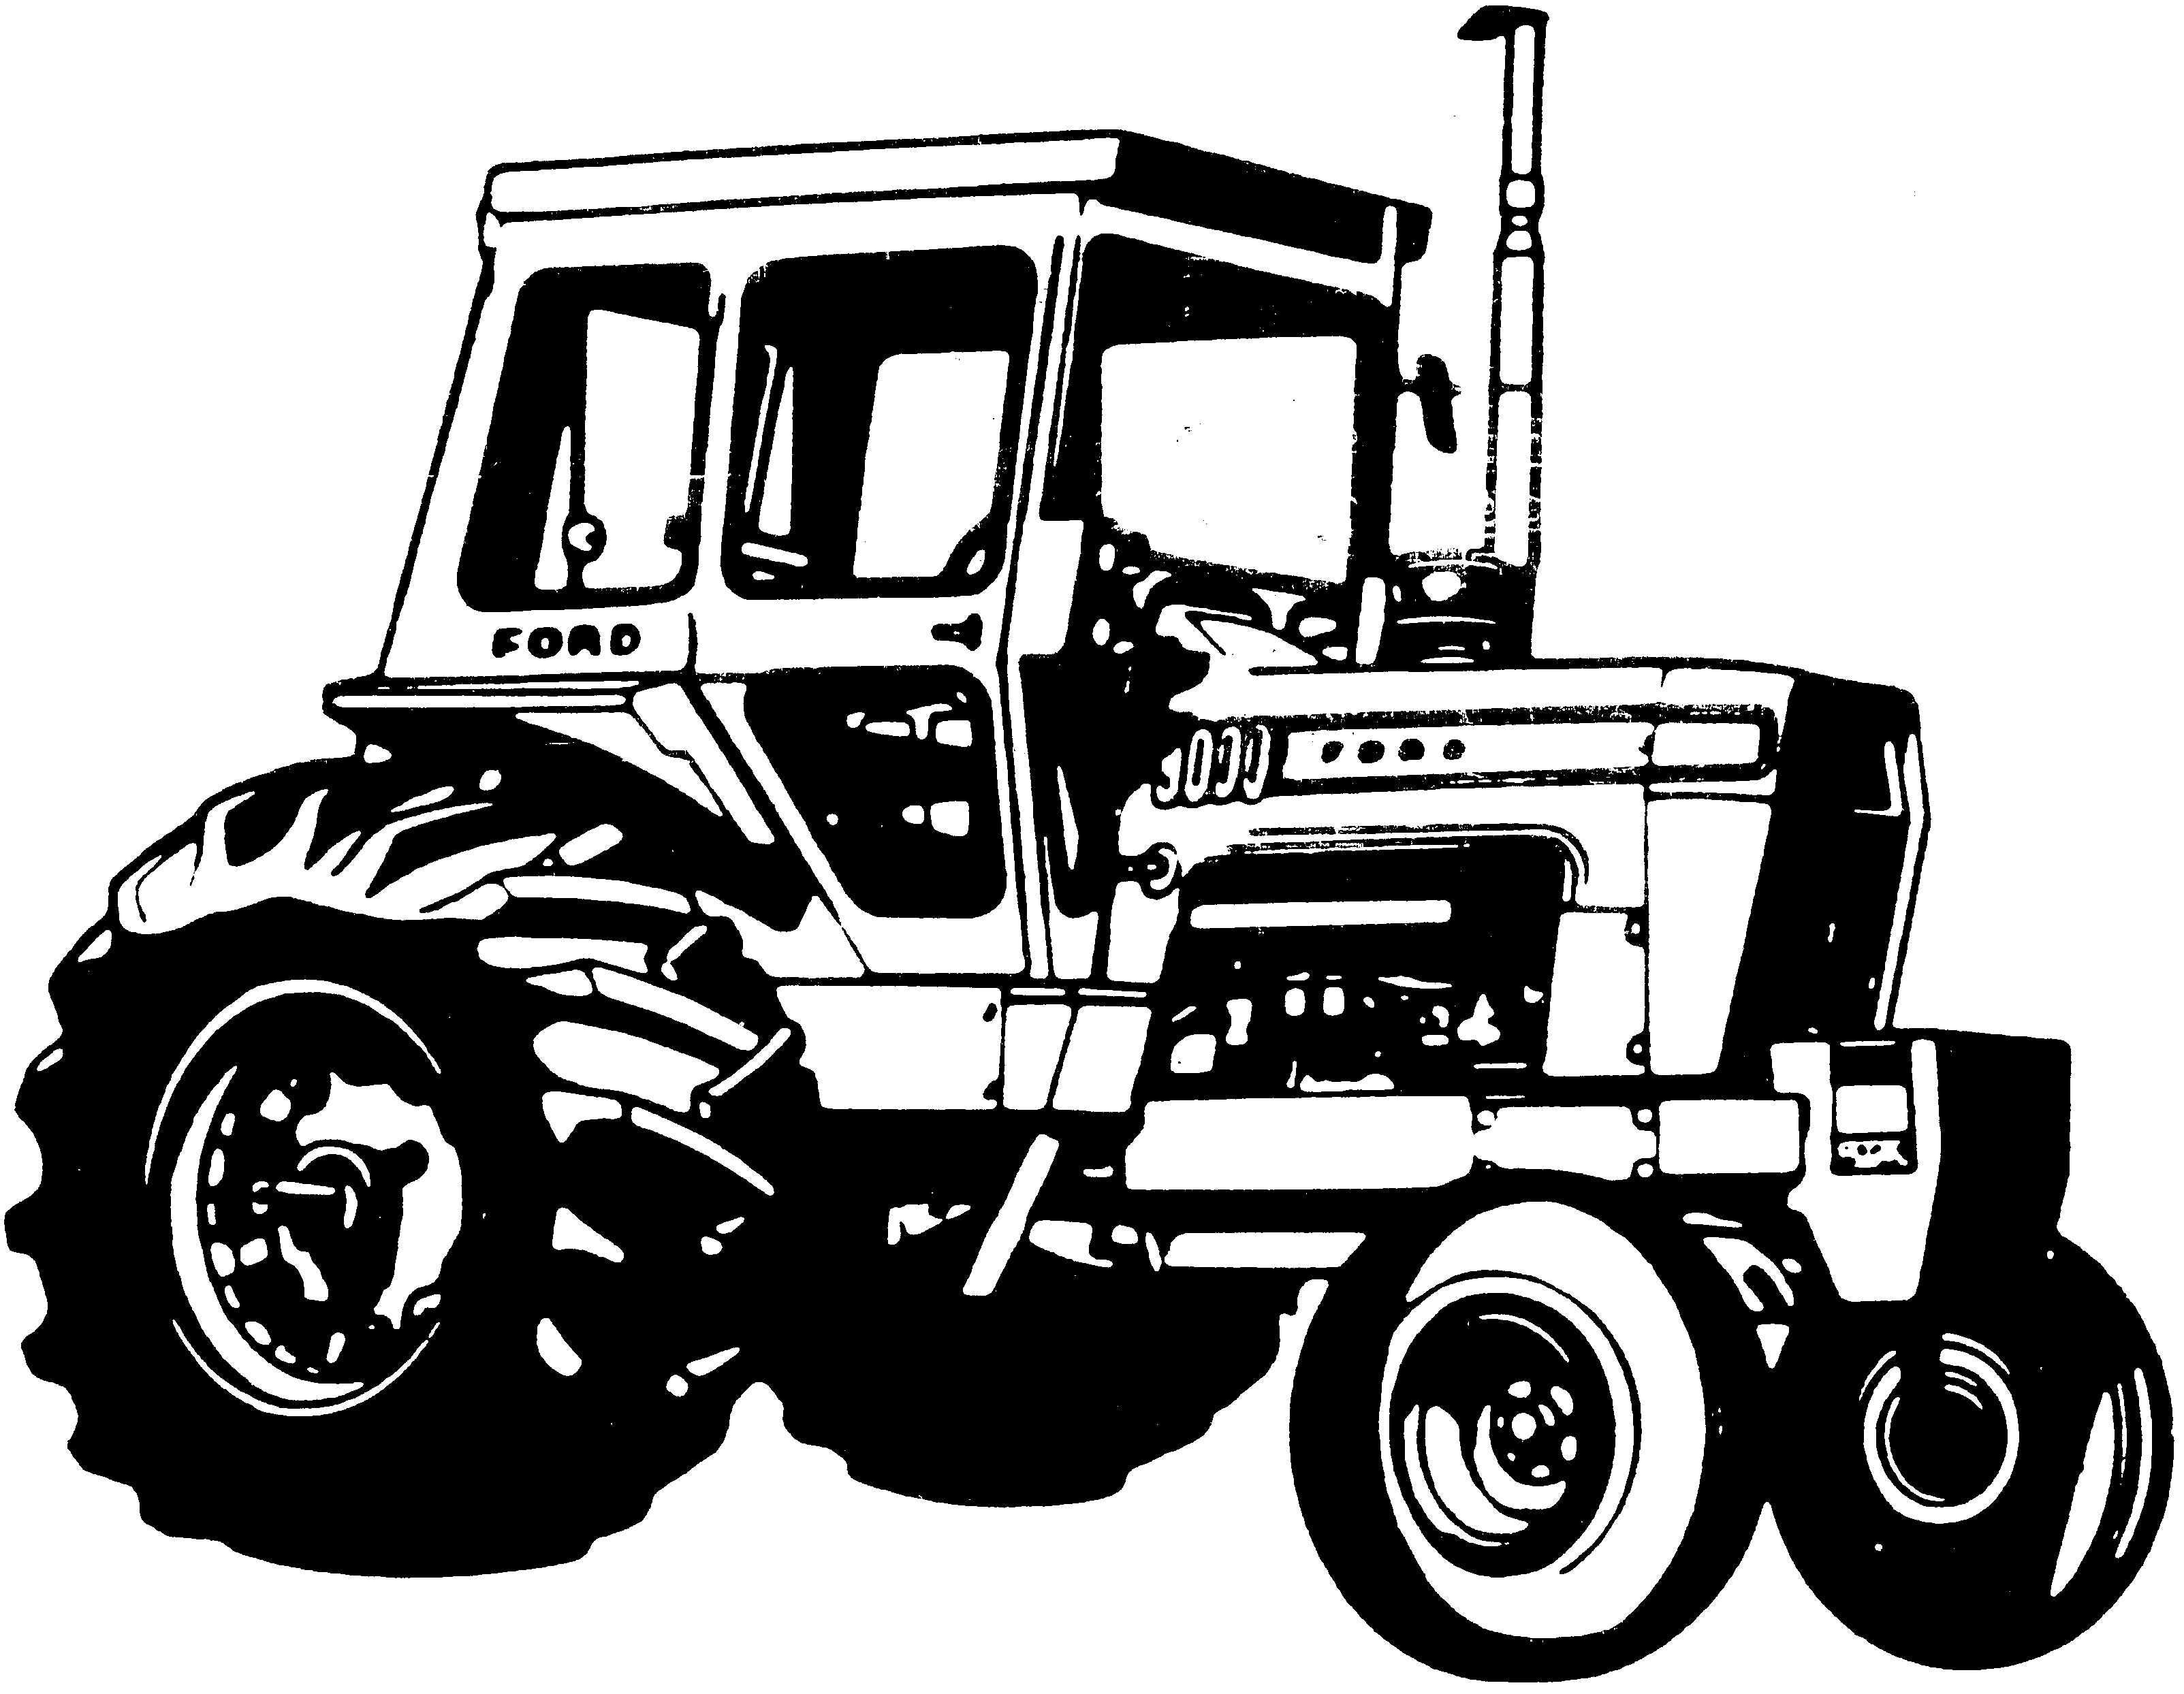 Ford    New Holland 8000  8600  9000  9600 Tractors Factory